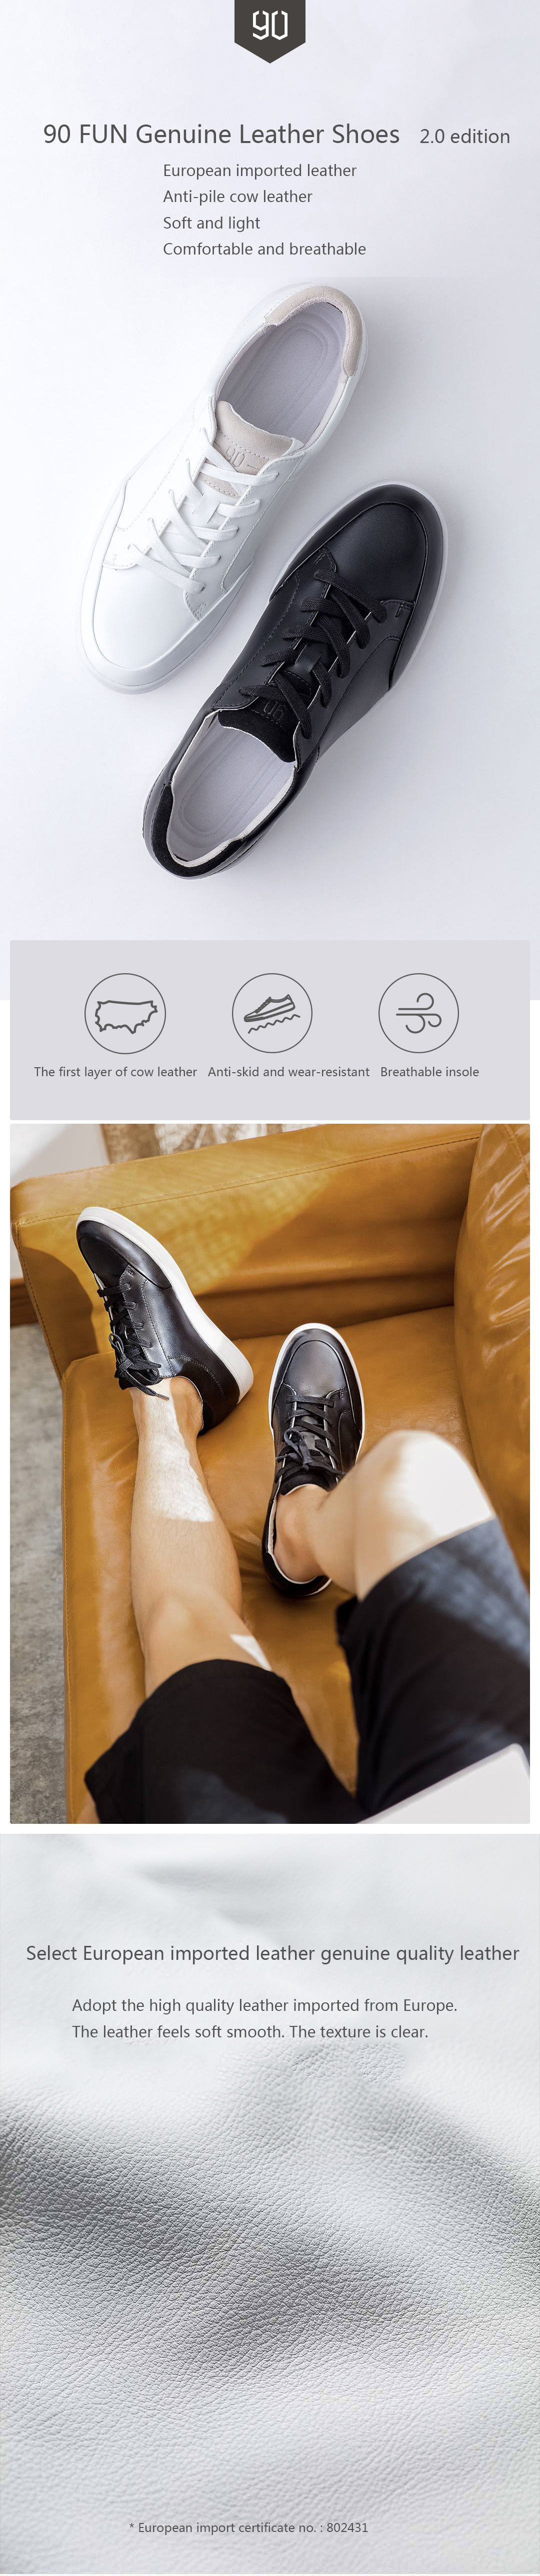 XIAOMI 90 FUN Women Leisure Genuine Sport Lace-up Leather Cowhide Breathable Casual Shoes Sneakers